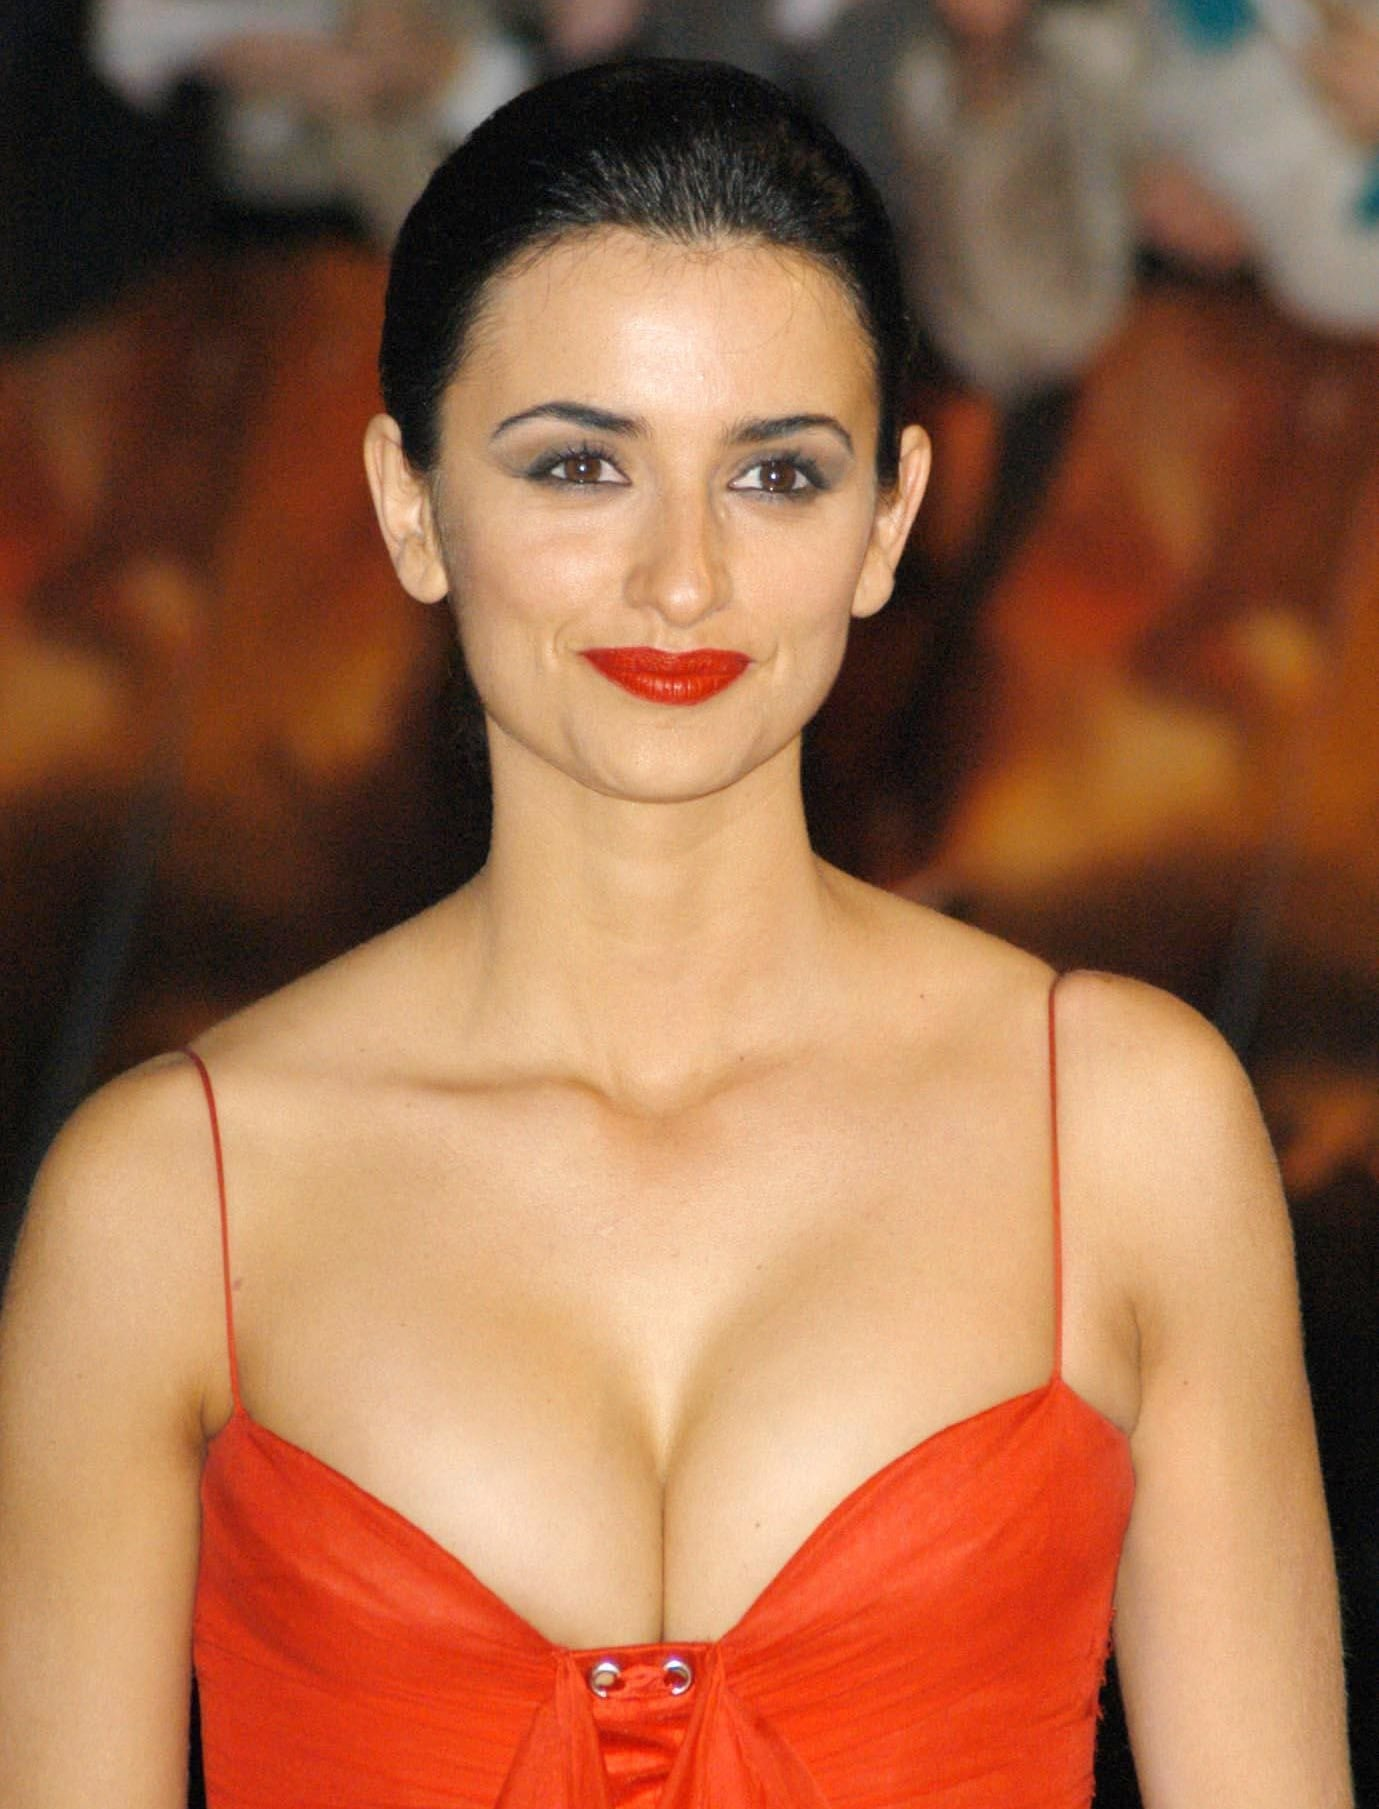 Penelope Cruz made her career breakthrough by baring her boobs in the comedy-drama art house film Jamón Jamón